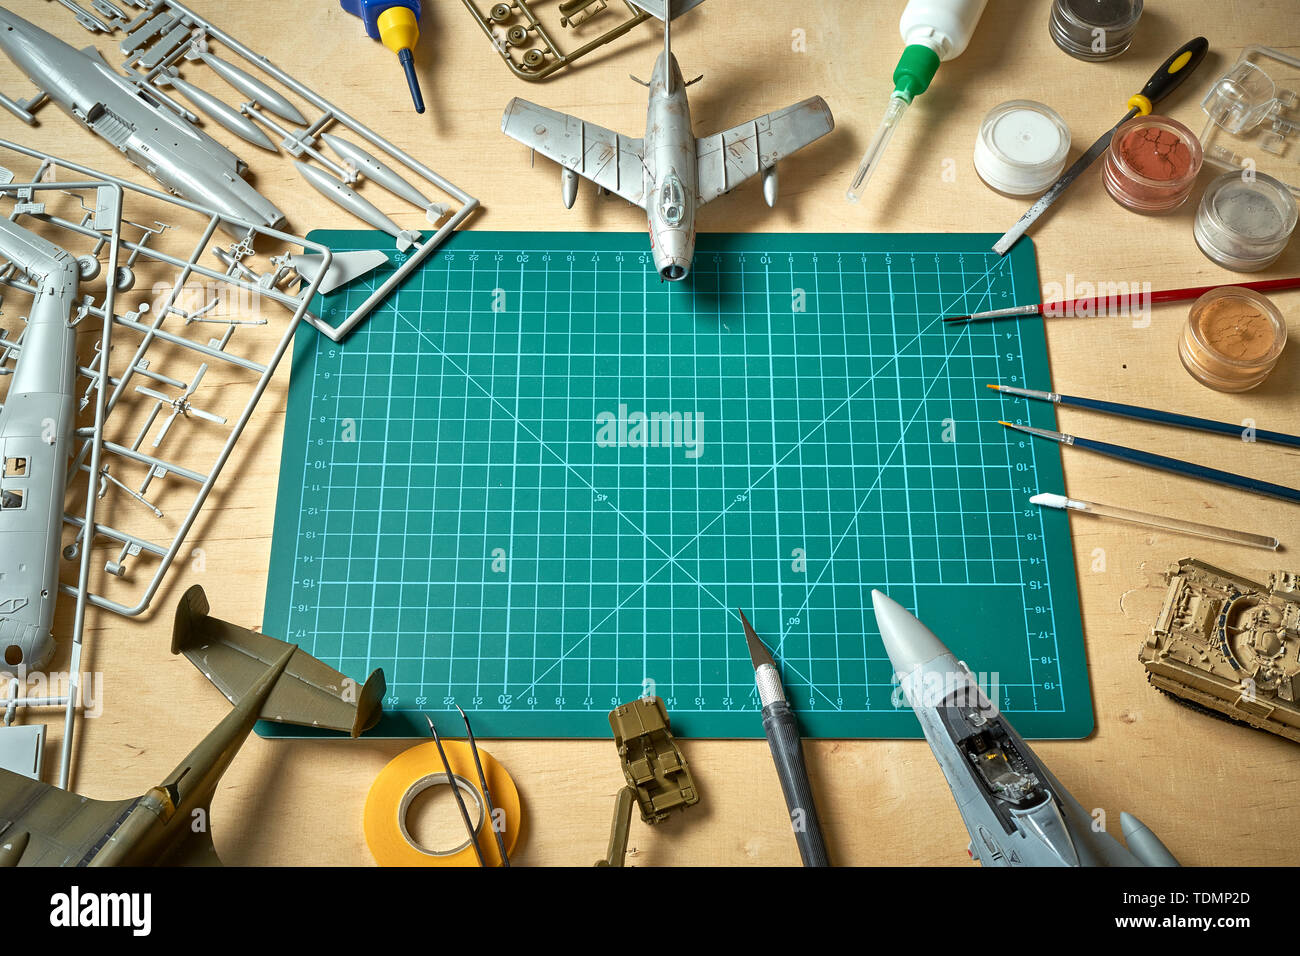 Top view on plastic model scale with accessories on  green pad on bright wooden table - Stock Image